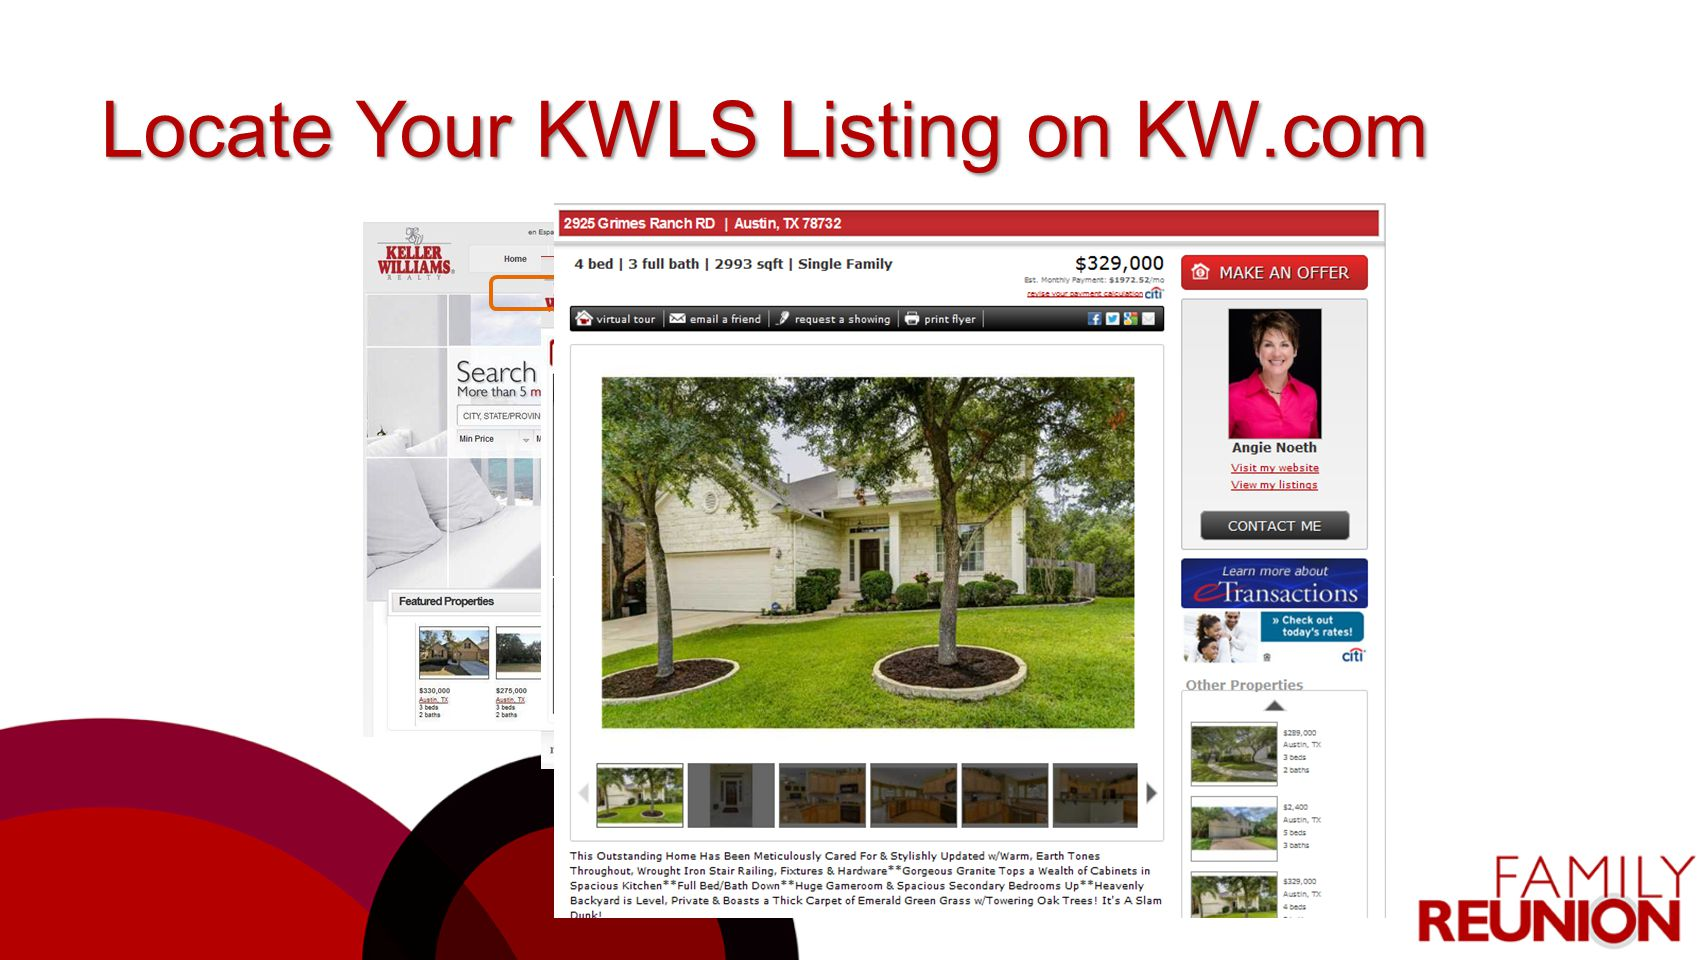 Locate Your KWLS Listing on KW.com